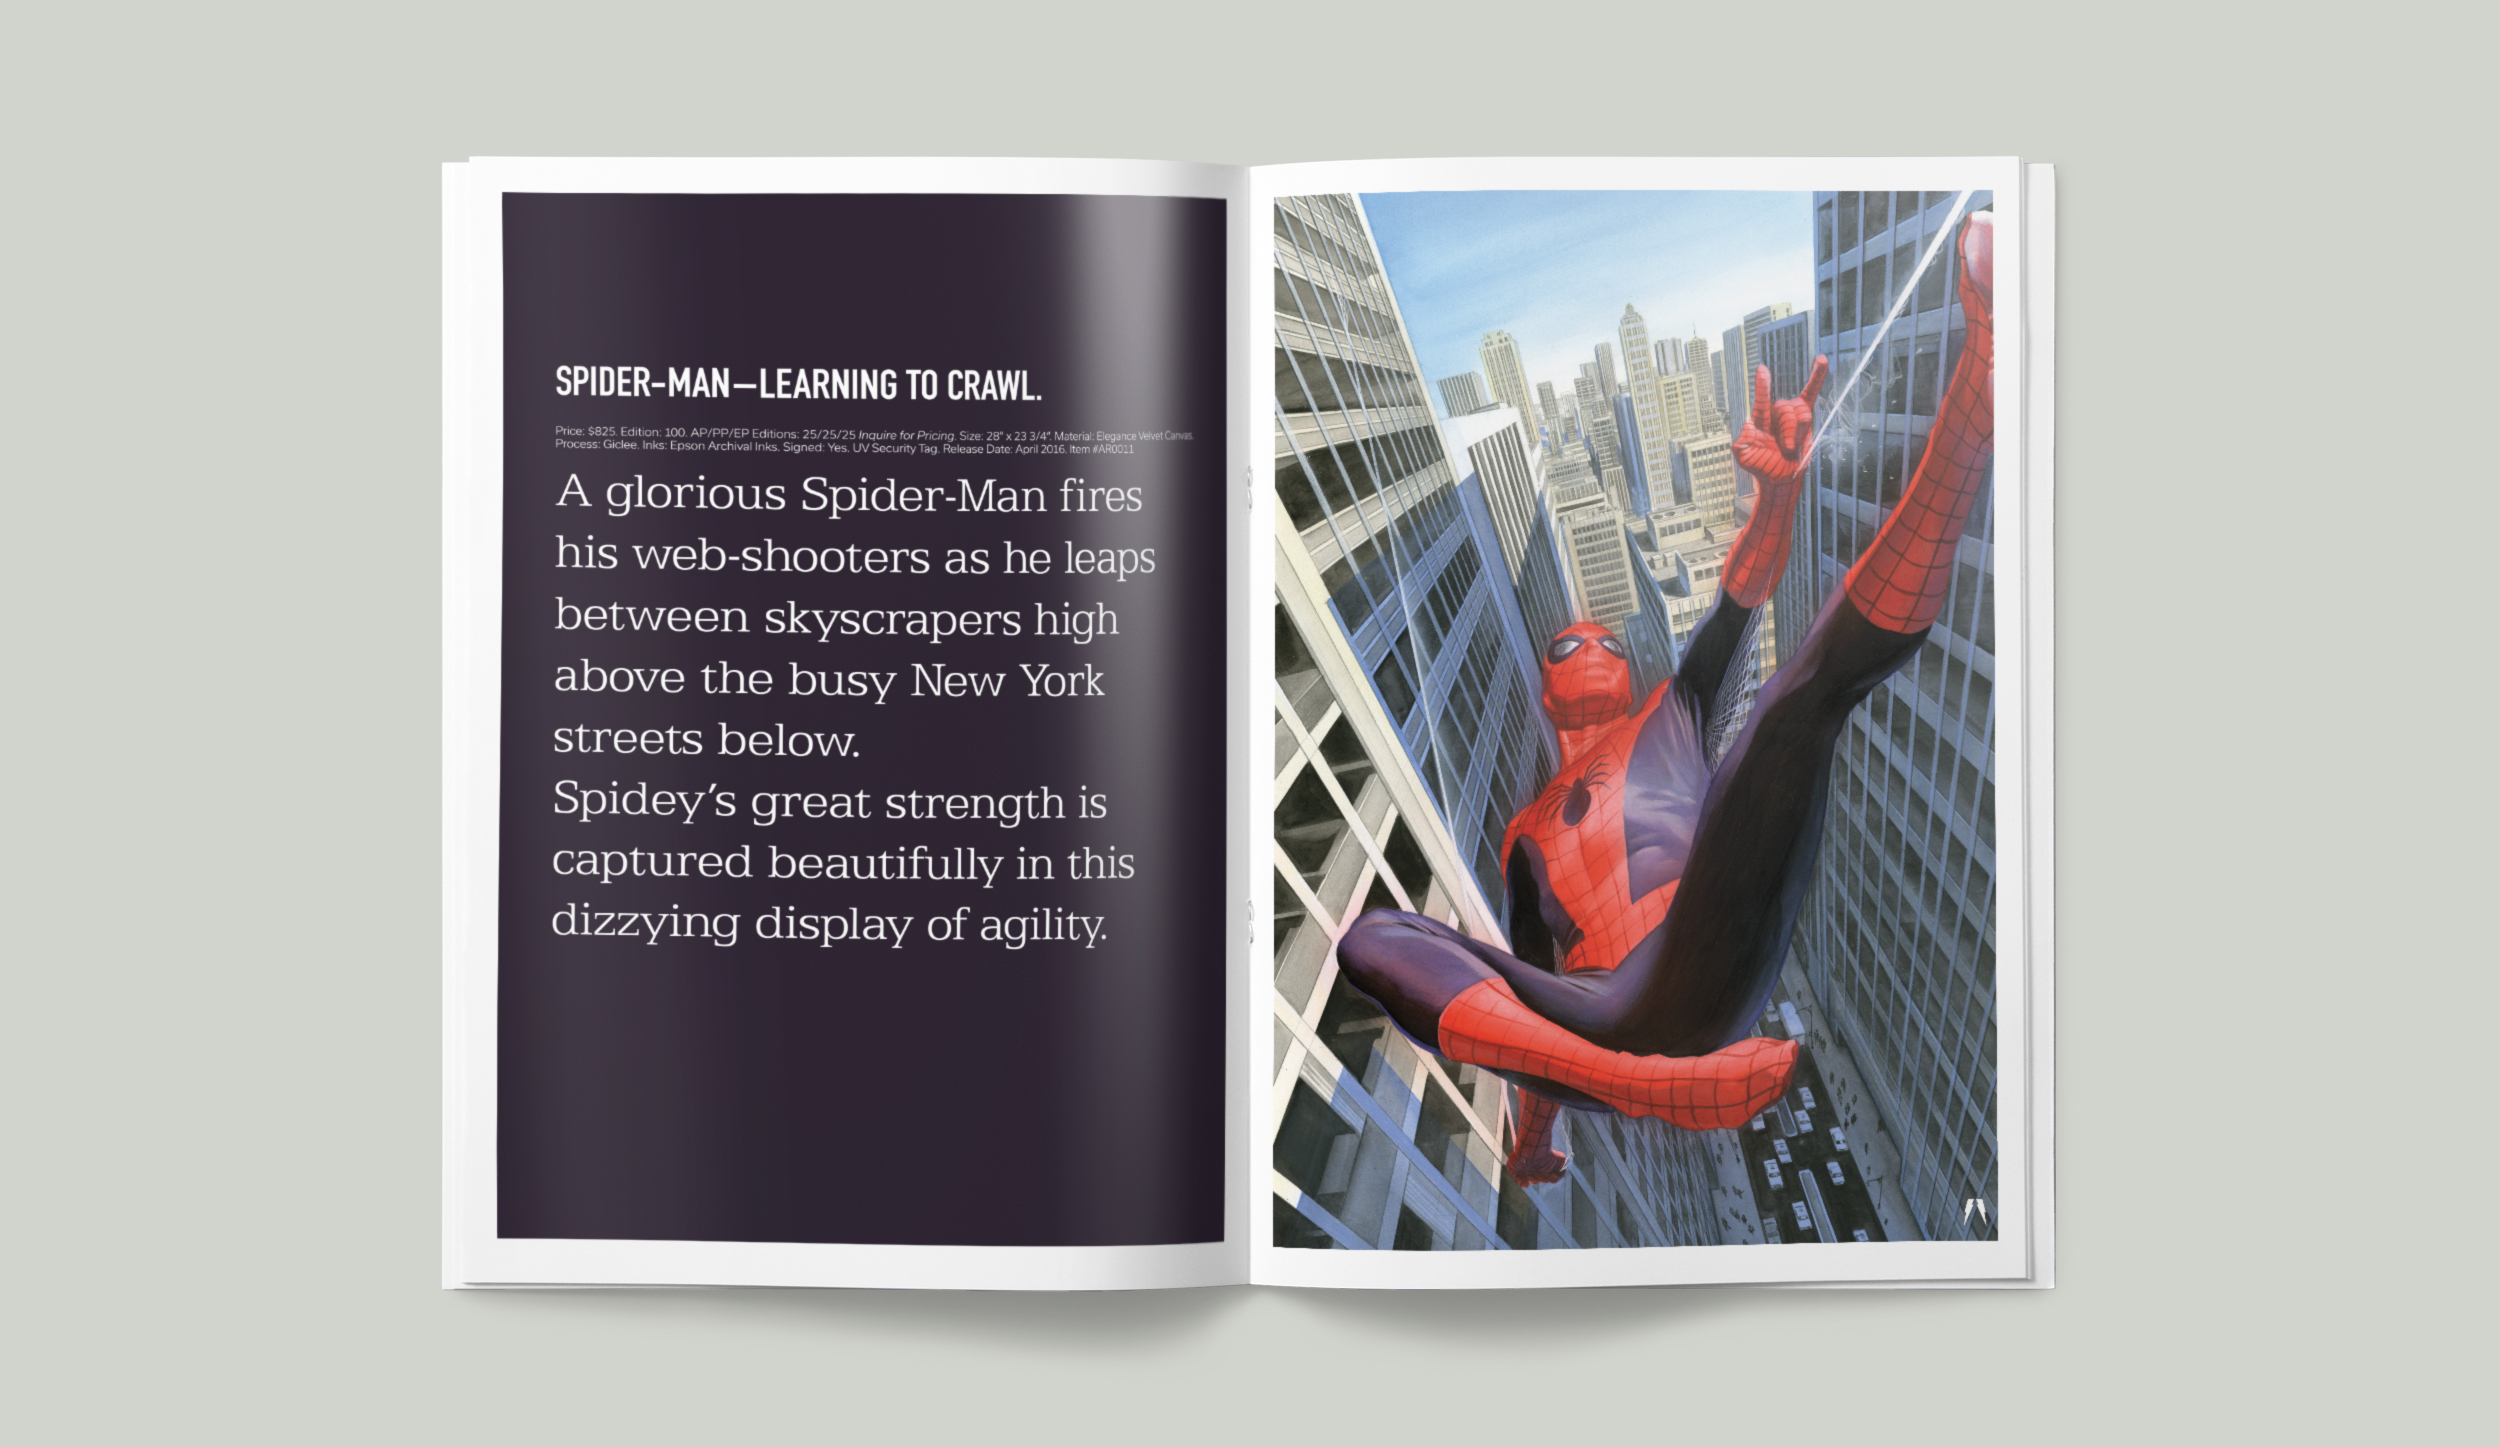 Marvel. Spiderman - Learning to Crawl.